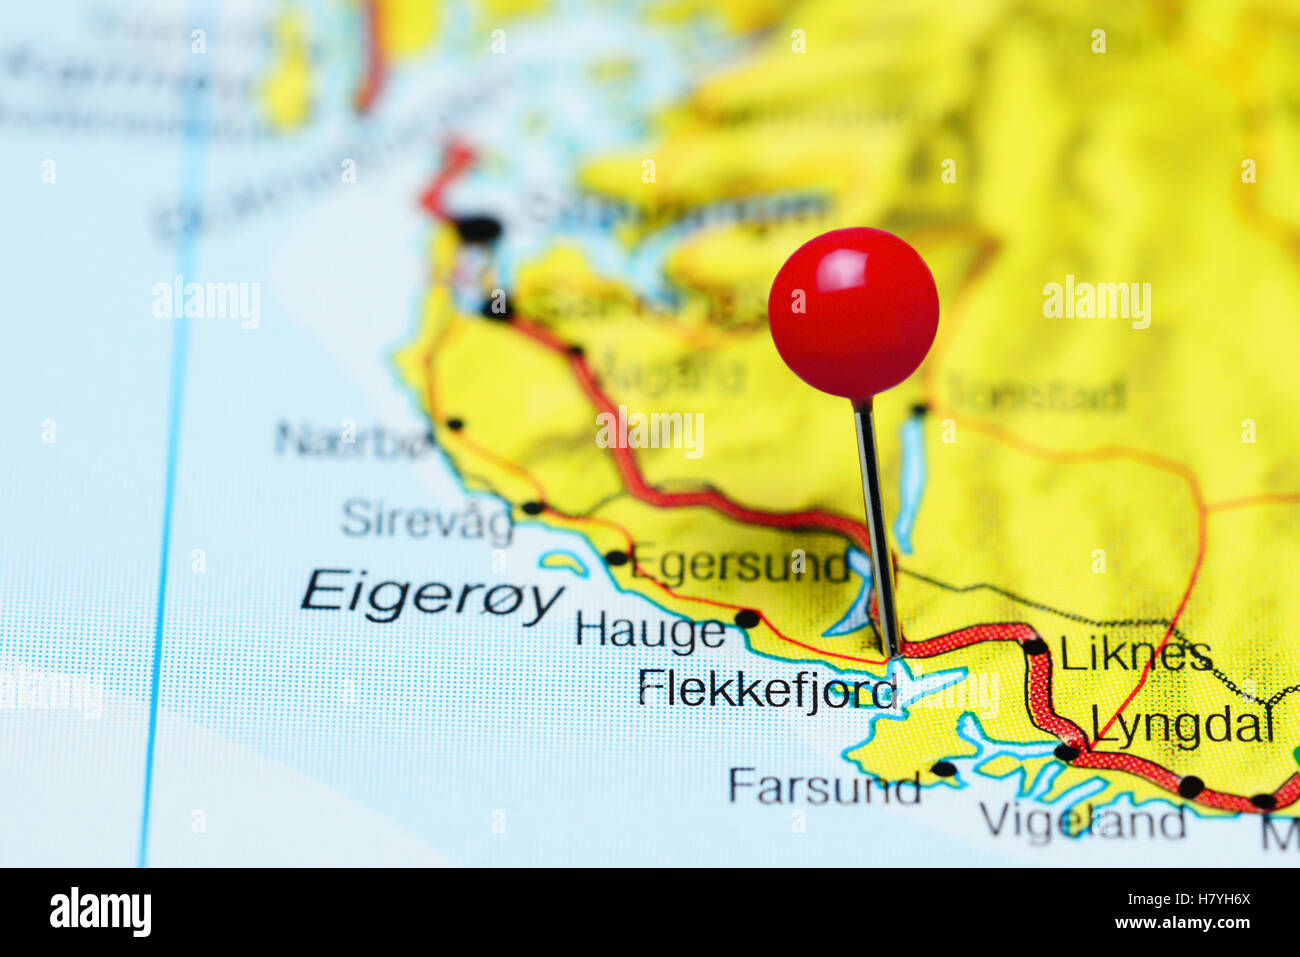 Flekkefjord pinned on a map of Norway Stock Photo Royalty Free